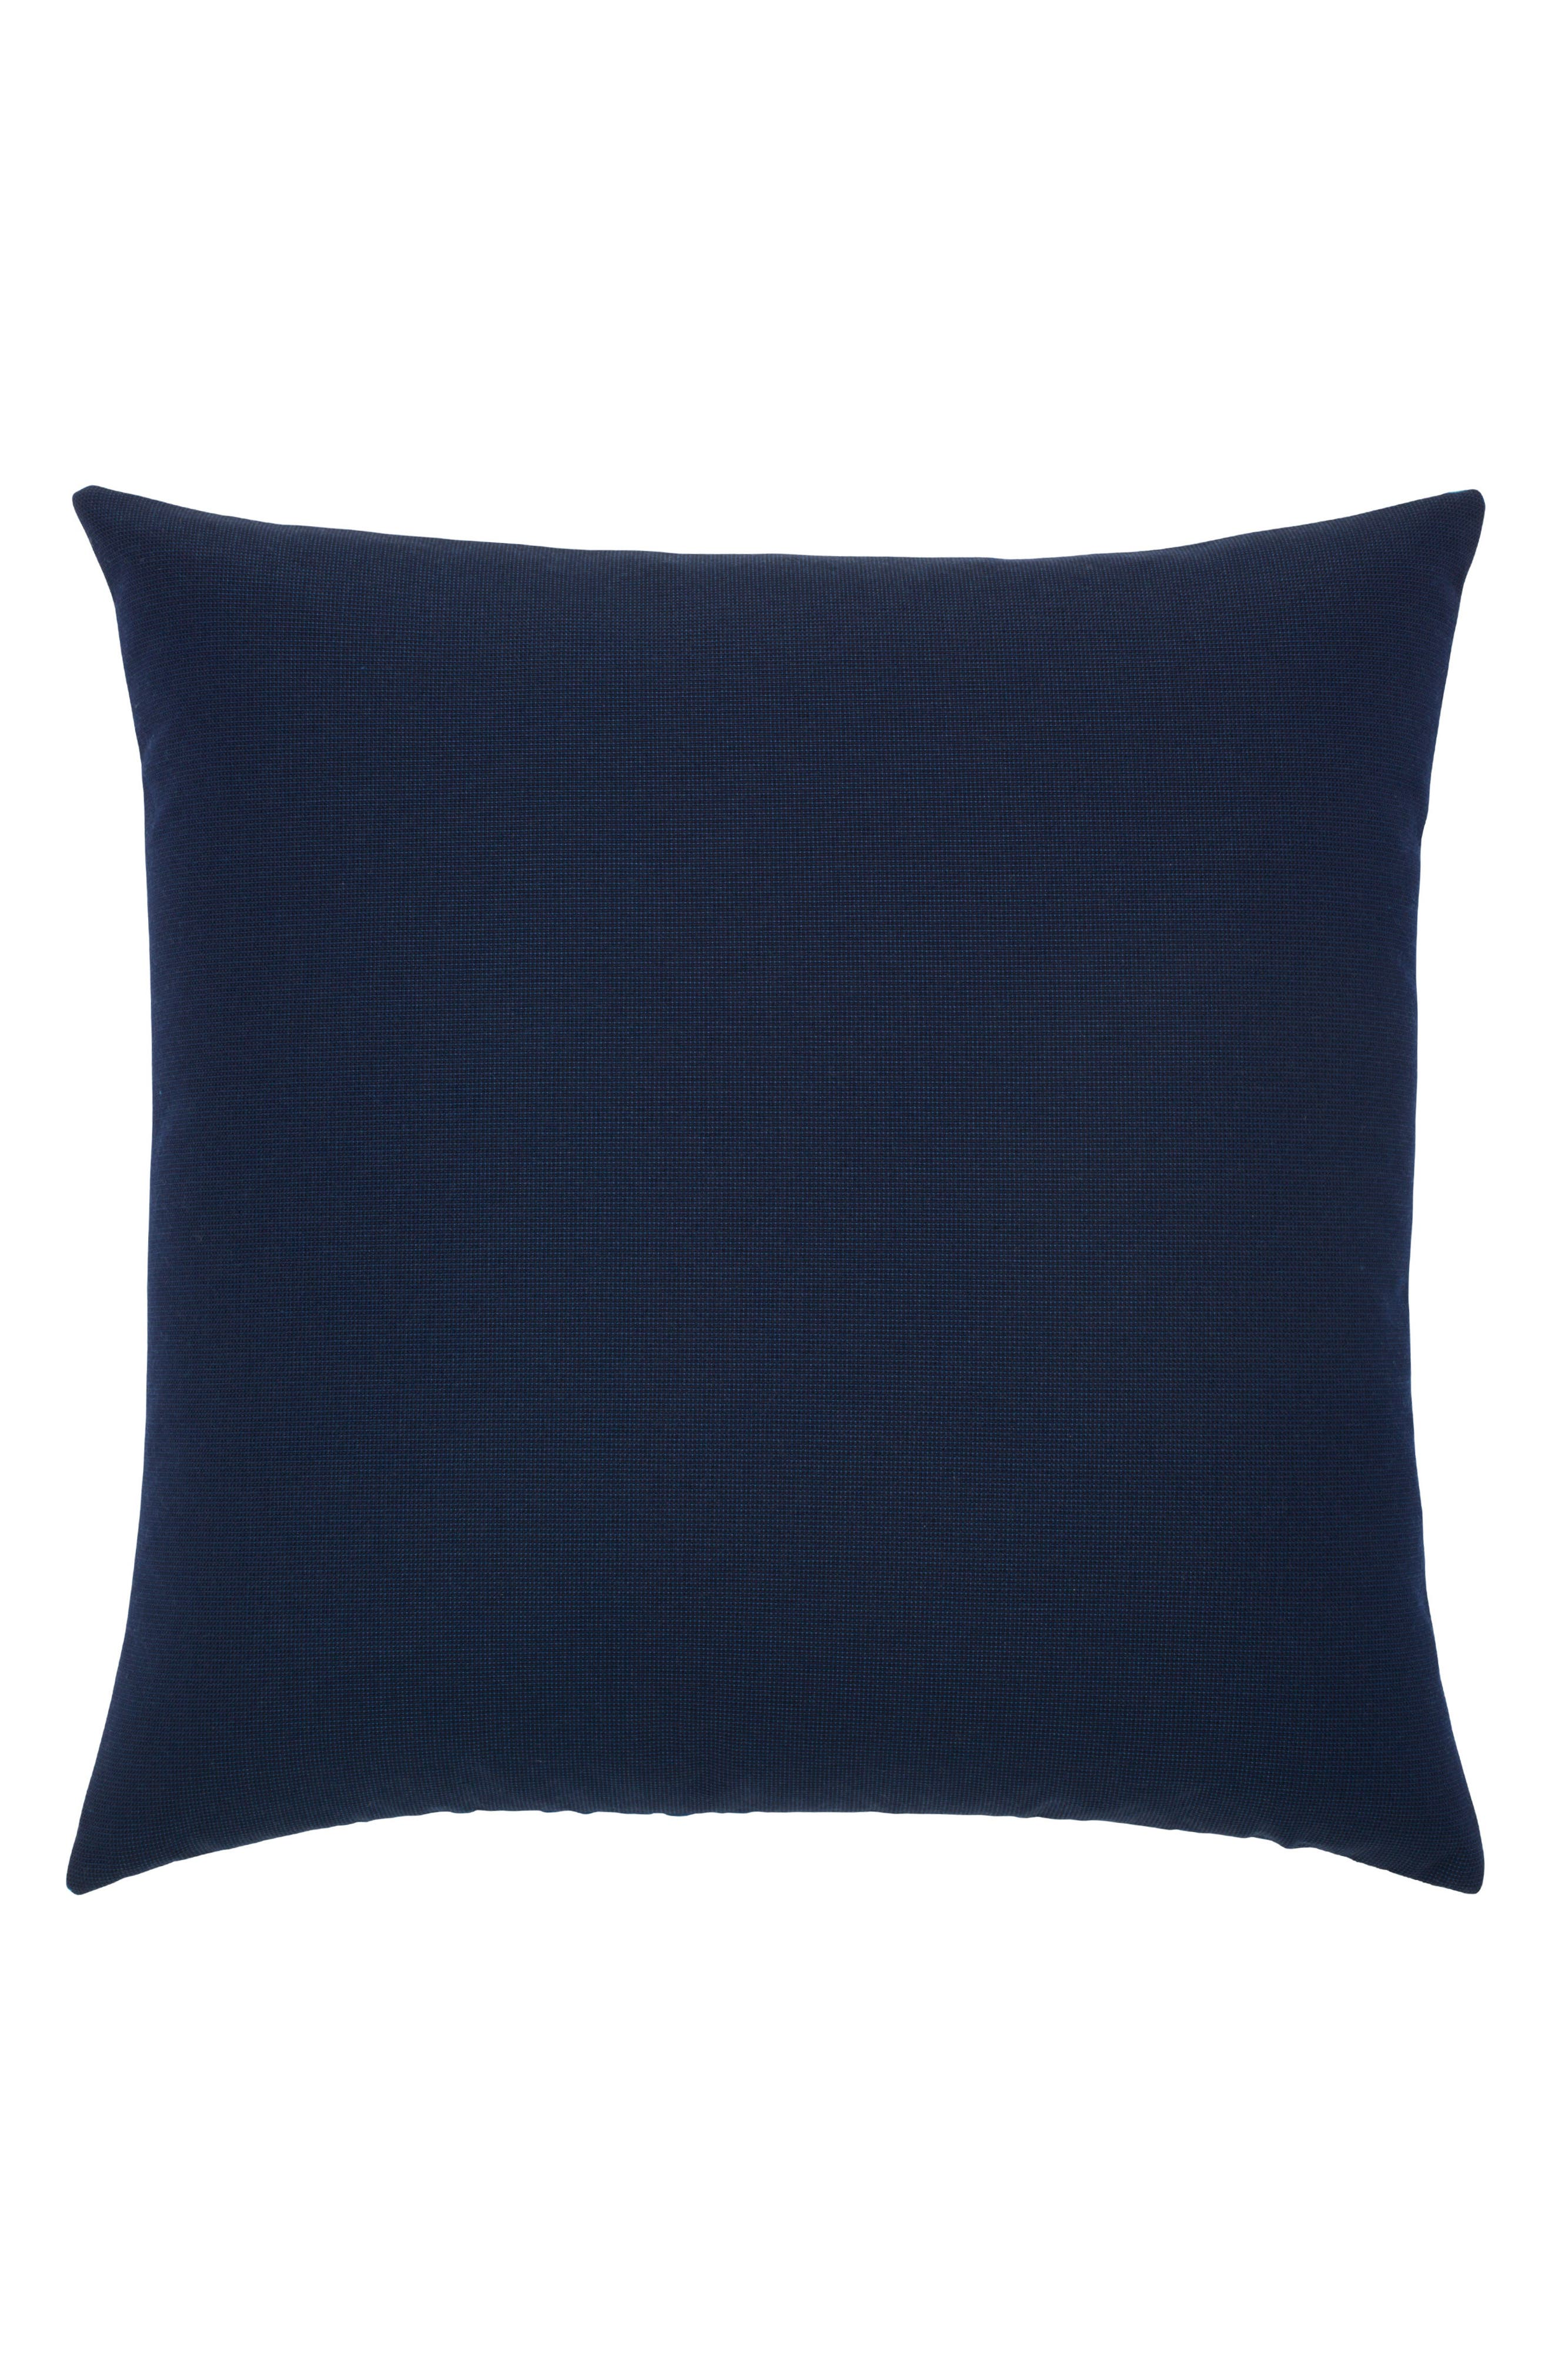 Optic Azure Indoor/Outdoor Accent Pillow,                             Alternate thumbnail 2, color,                             400